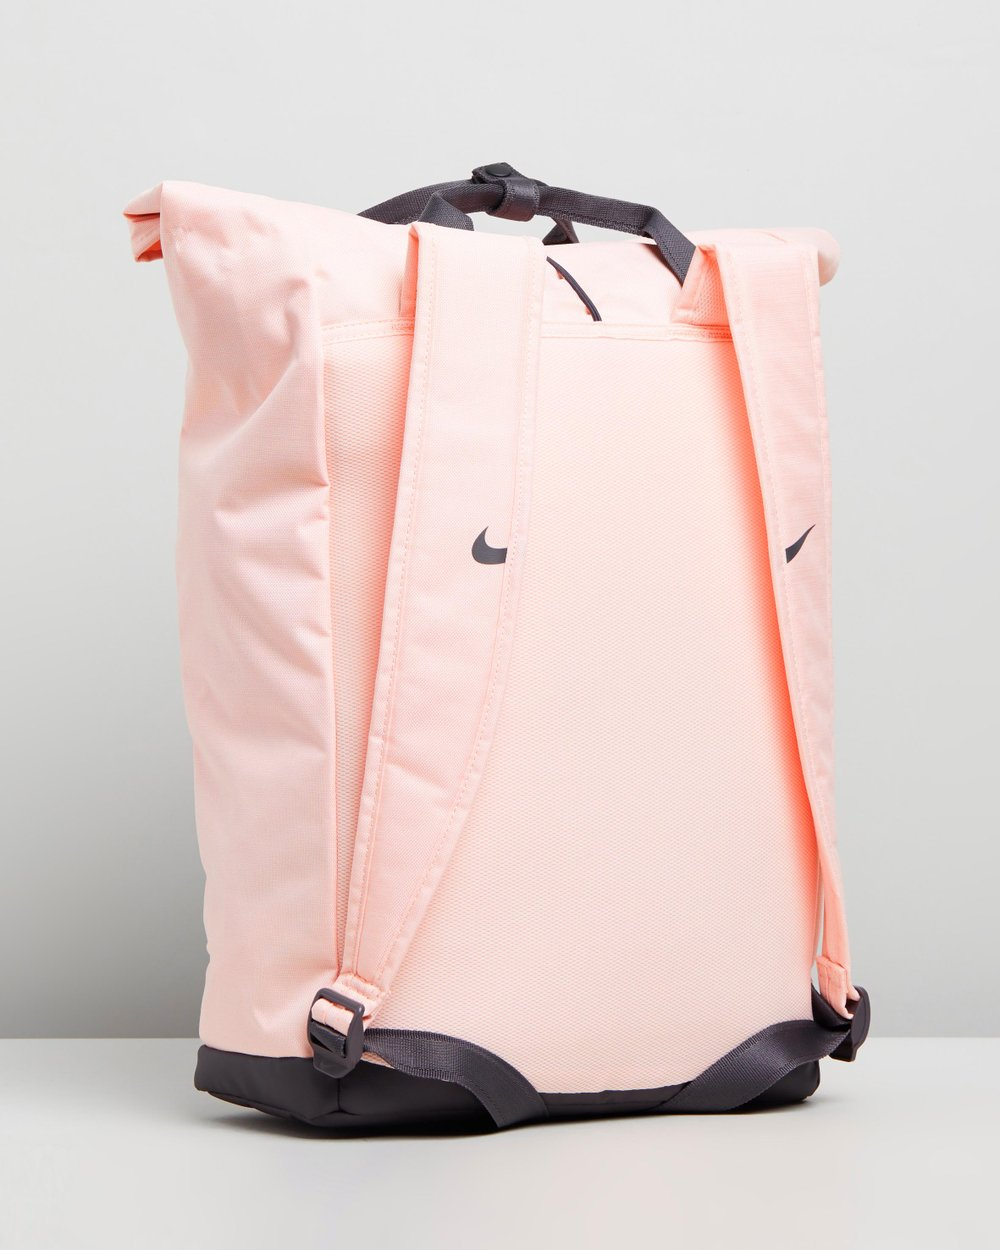 Radiate Training Graphic Backpack - Women s by Nike Online  bb1ae929d4a1d